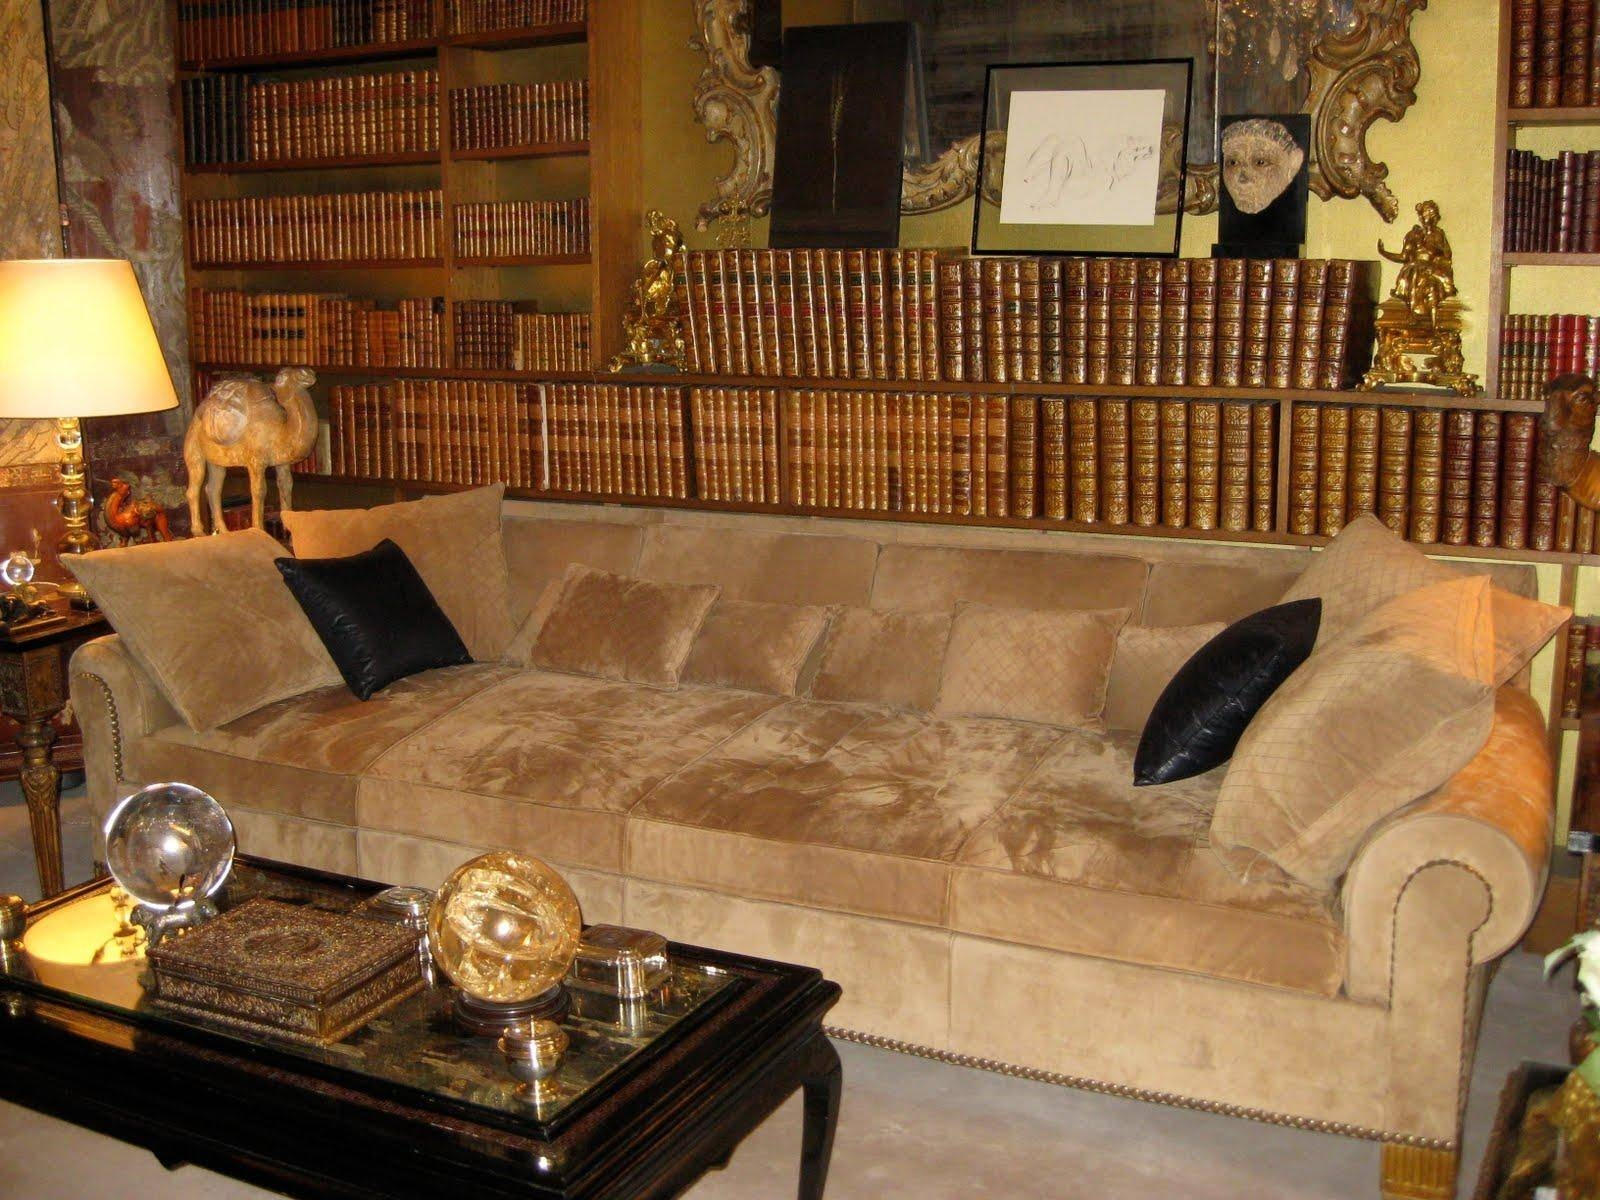 20 Best Collection Of Coco Chanel Sofas | Sofa Ideas intended for Coco Chanel Sofas (Image 2 of 15)